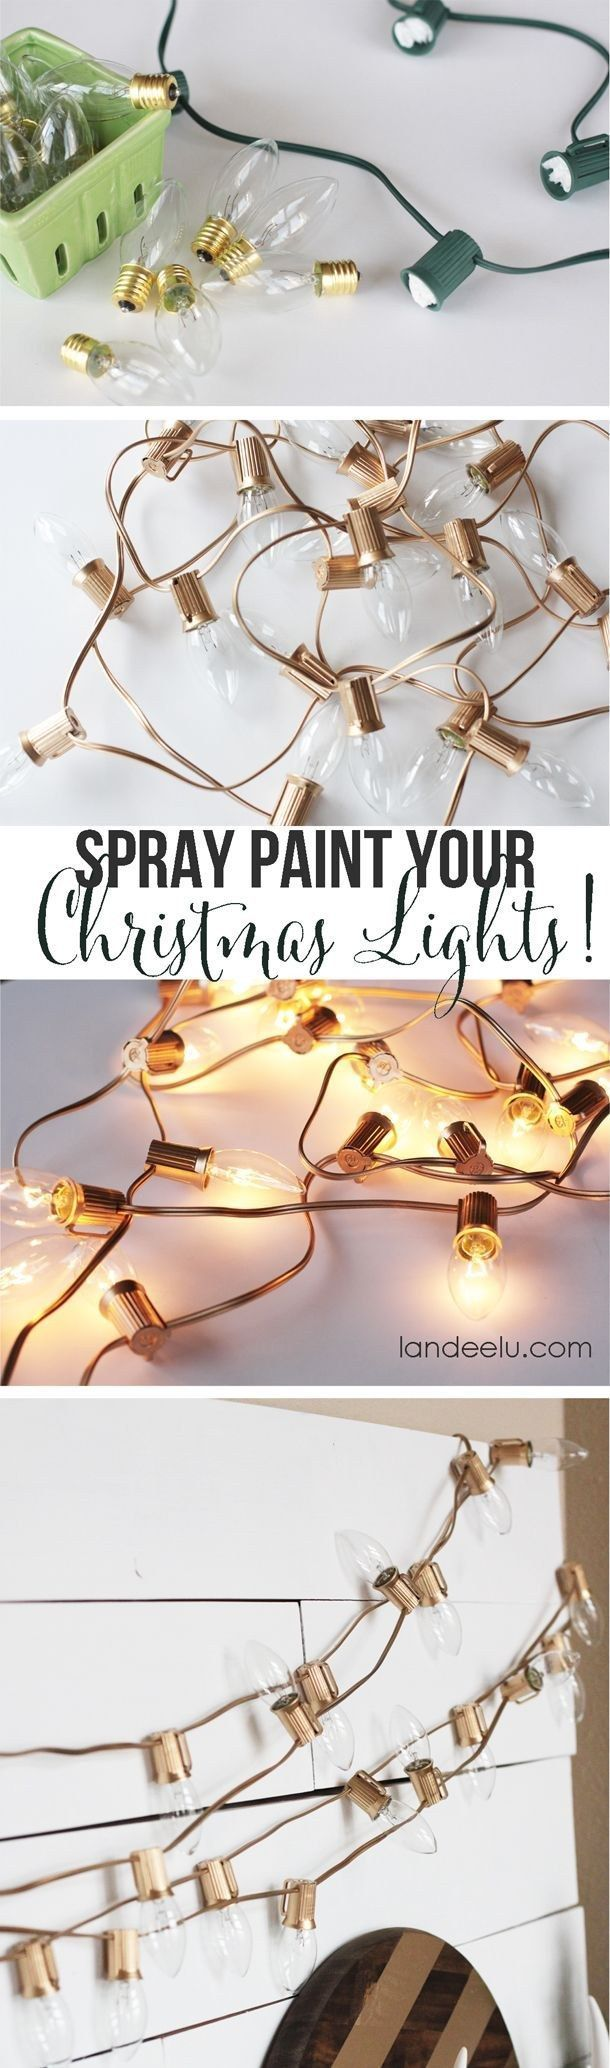 33 Ways Spray Paint Can Make Your Stuff Look More Expensive.  Let's do half of them today, and the other half tomorrow.  Great ideas for year round!